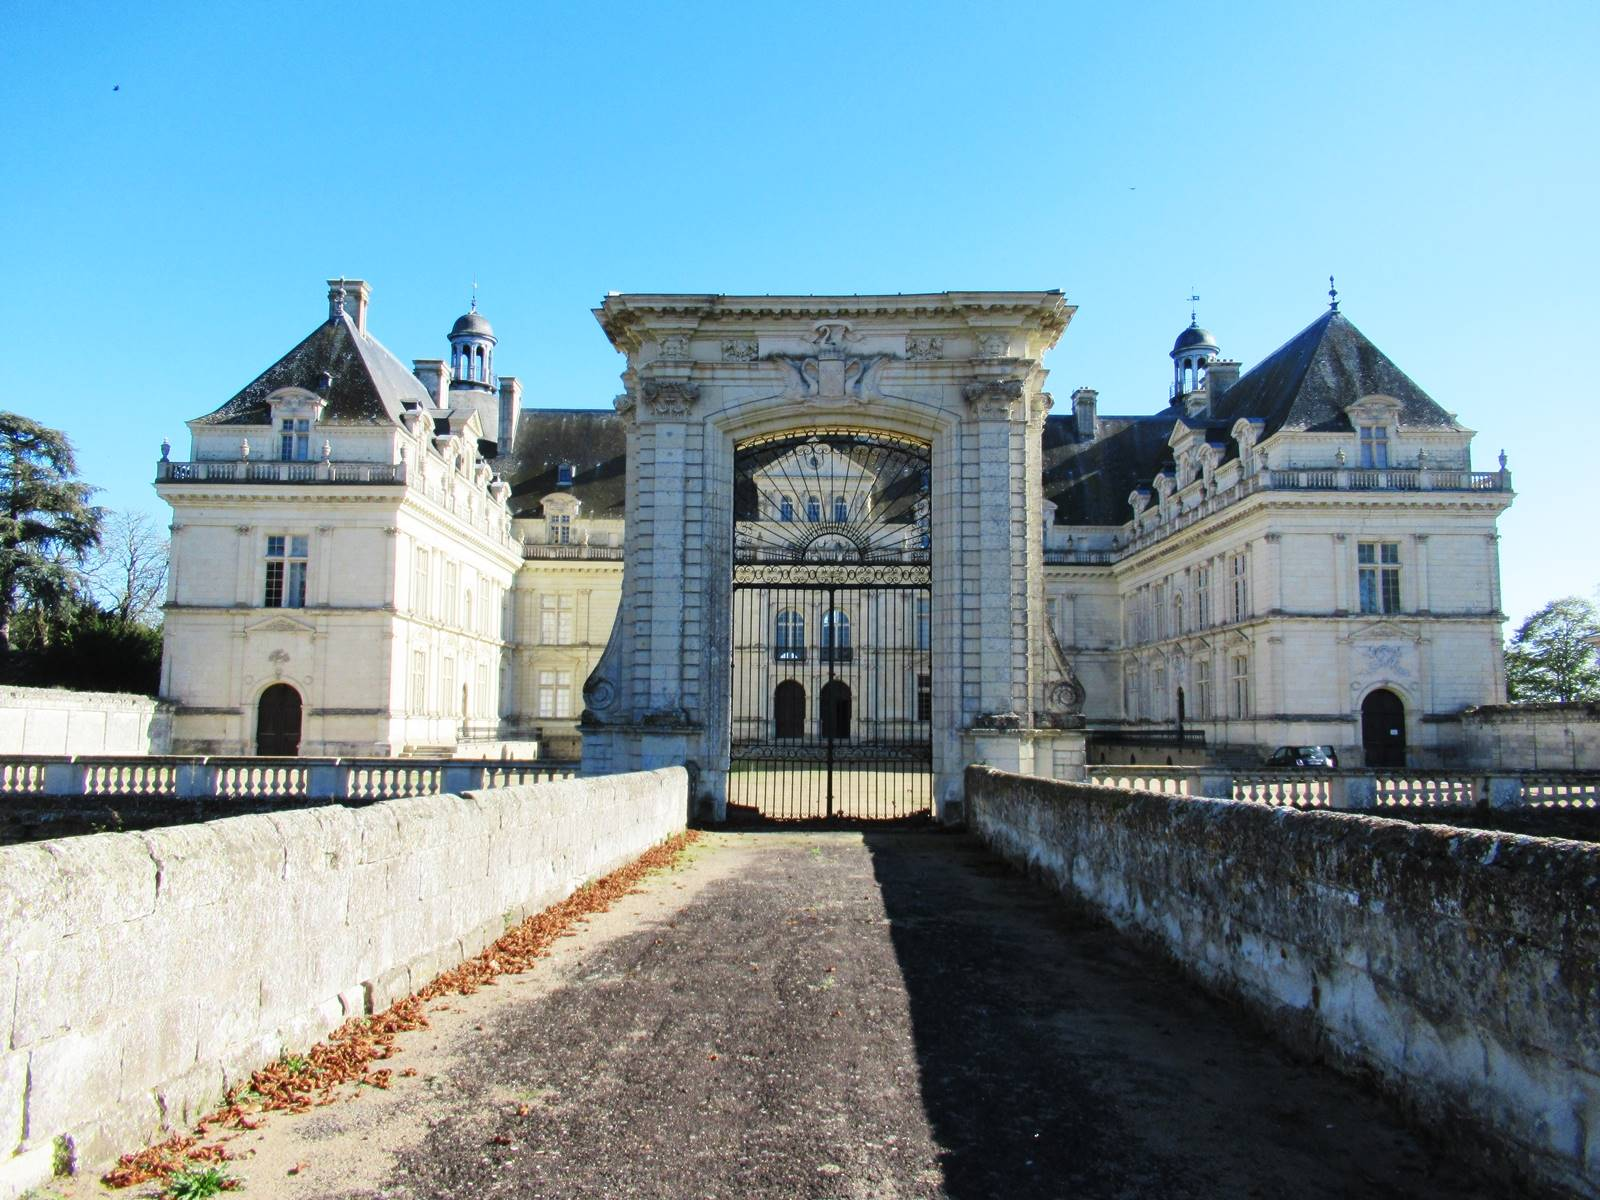 Chateau de serrant modifiee 19